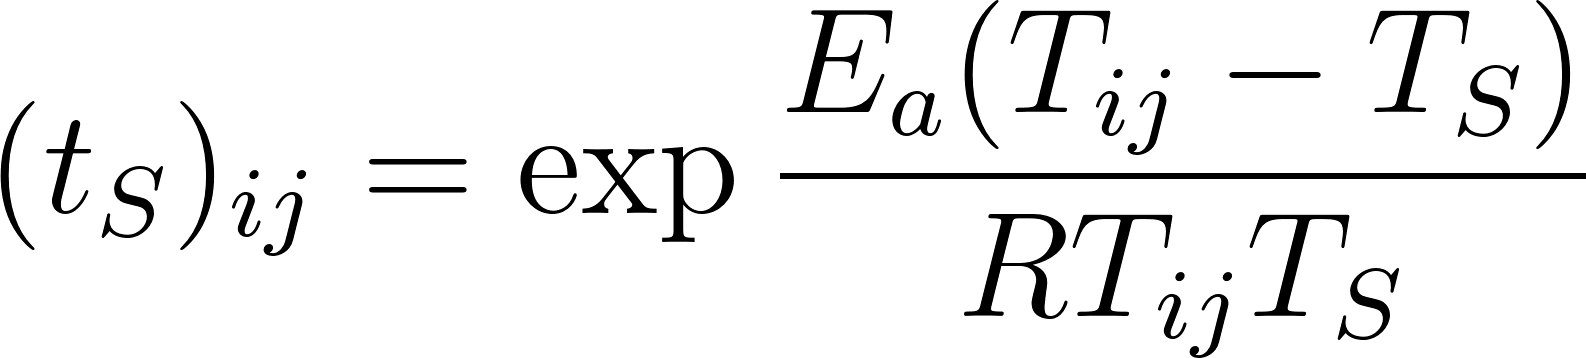 formula proposed by Aono